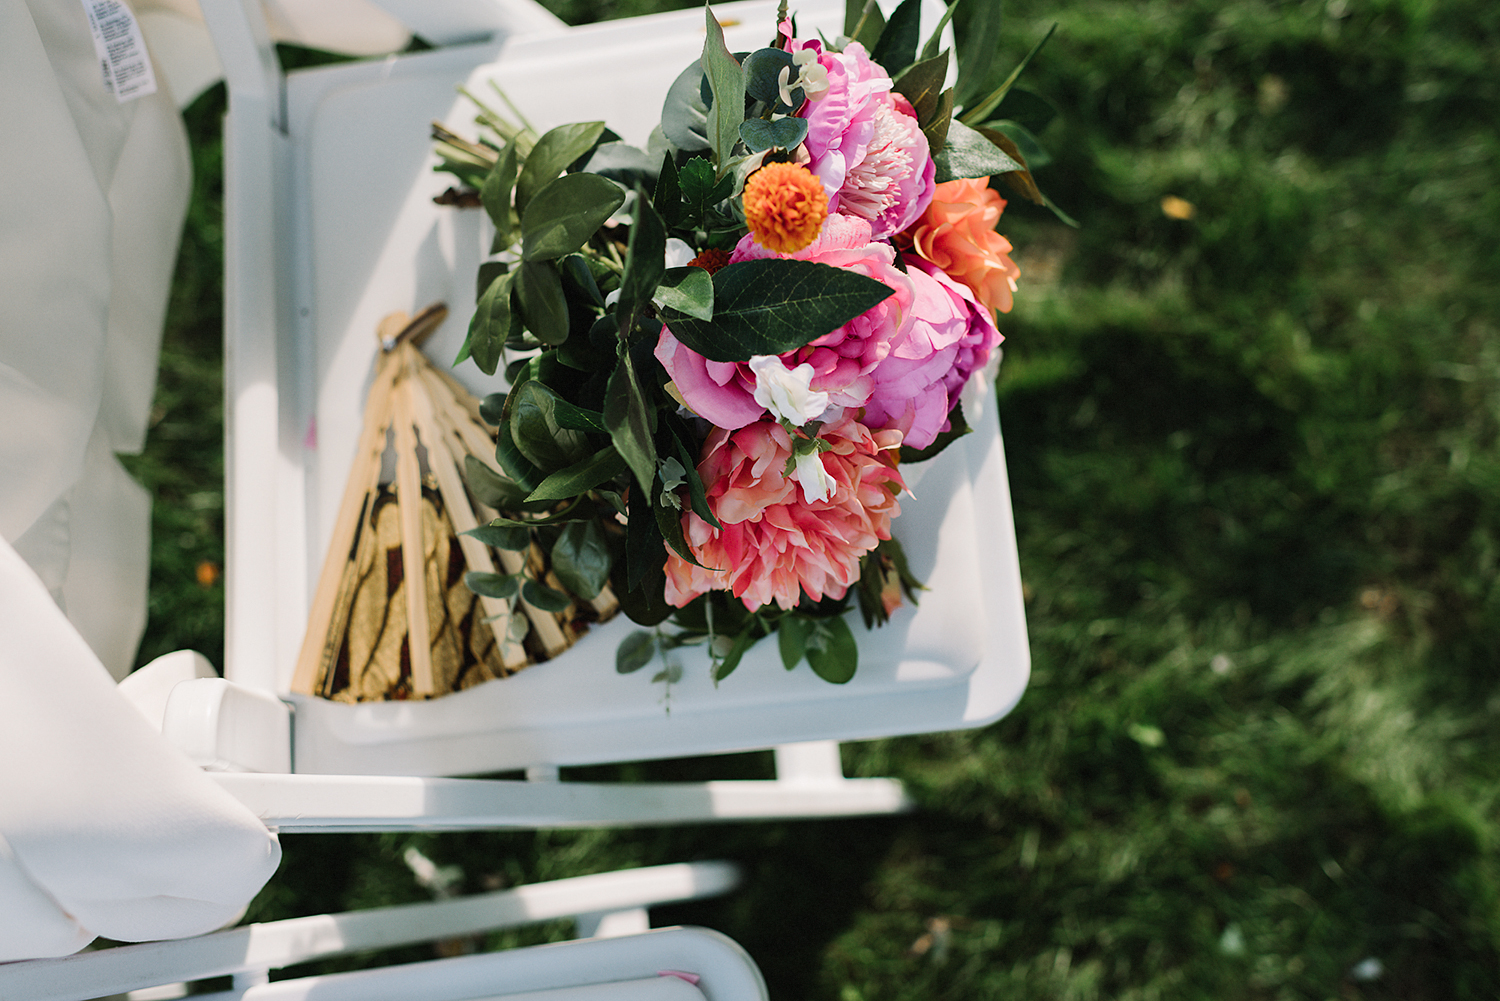 Backyard-family-wedding-chatum-kent-toronto-film-photographer-ryanne-hollies-photography-diy-string-lights-and-lanterns-reception-dinner-documentary-wooden-harvest-tables-diy-decor-speeches-brides-flowers.jpg